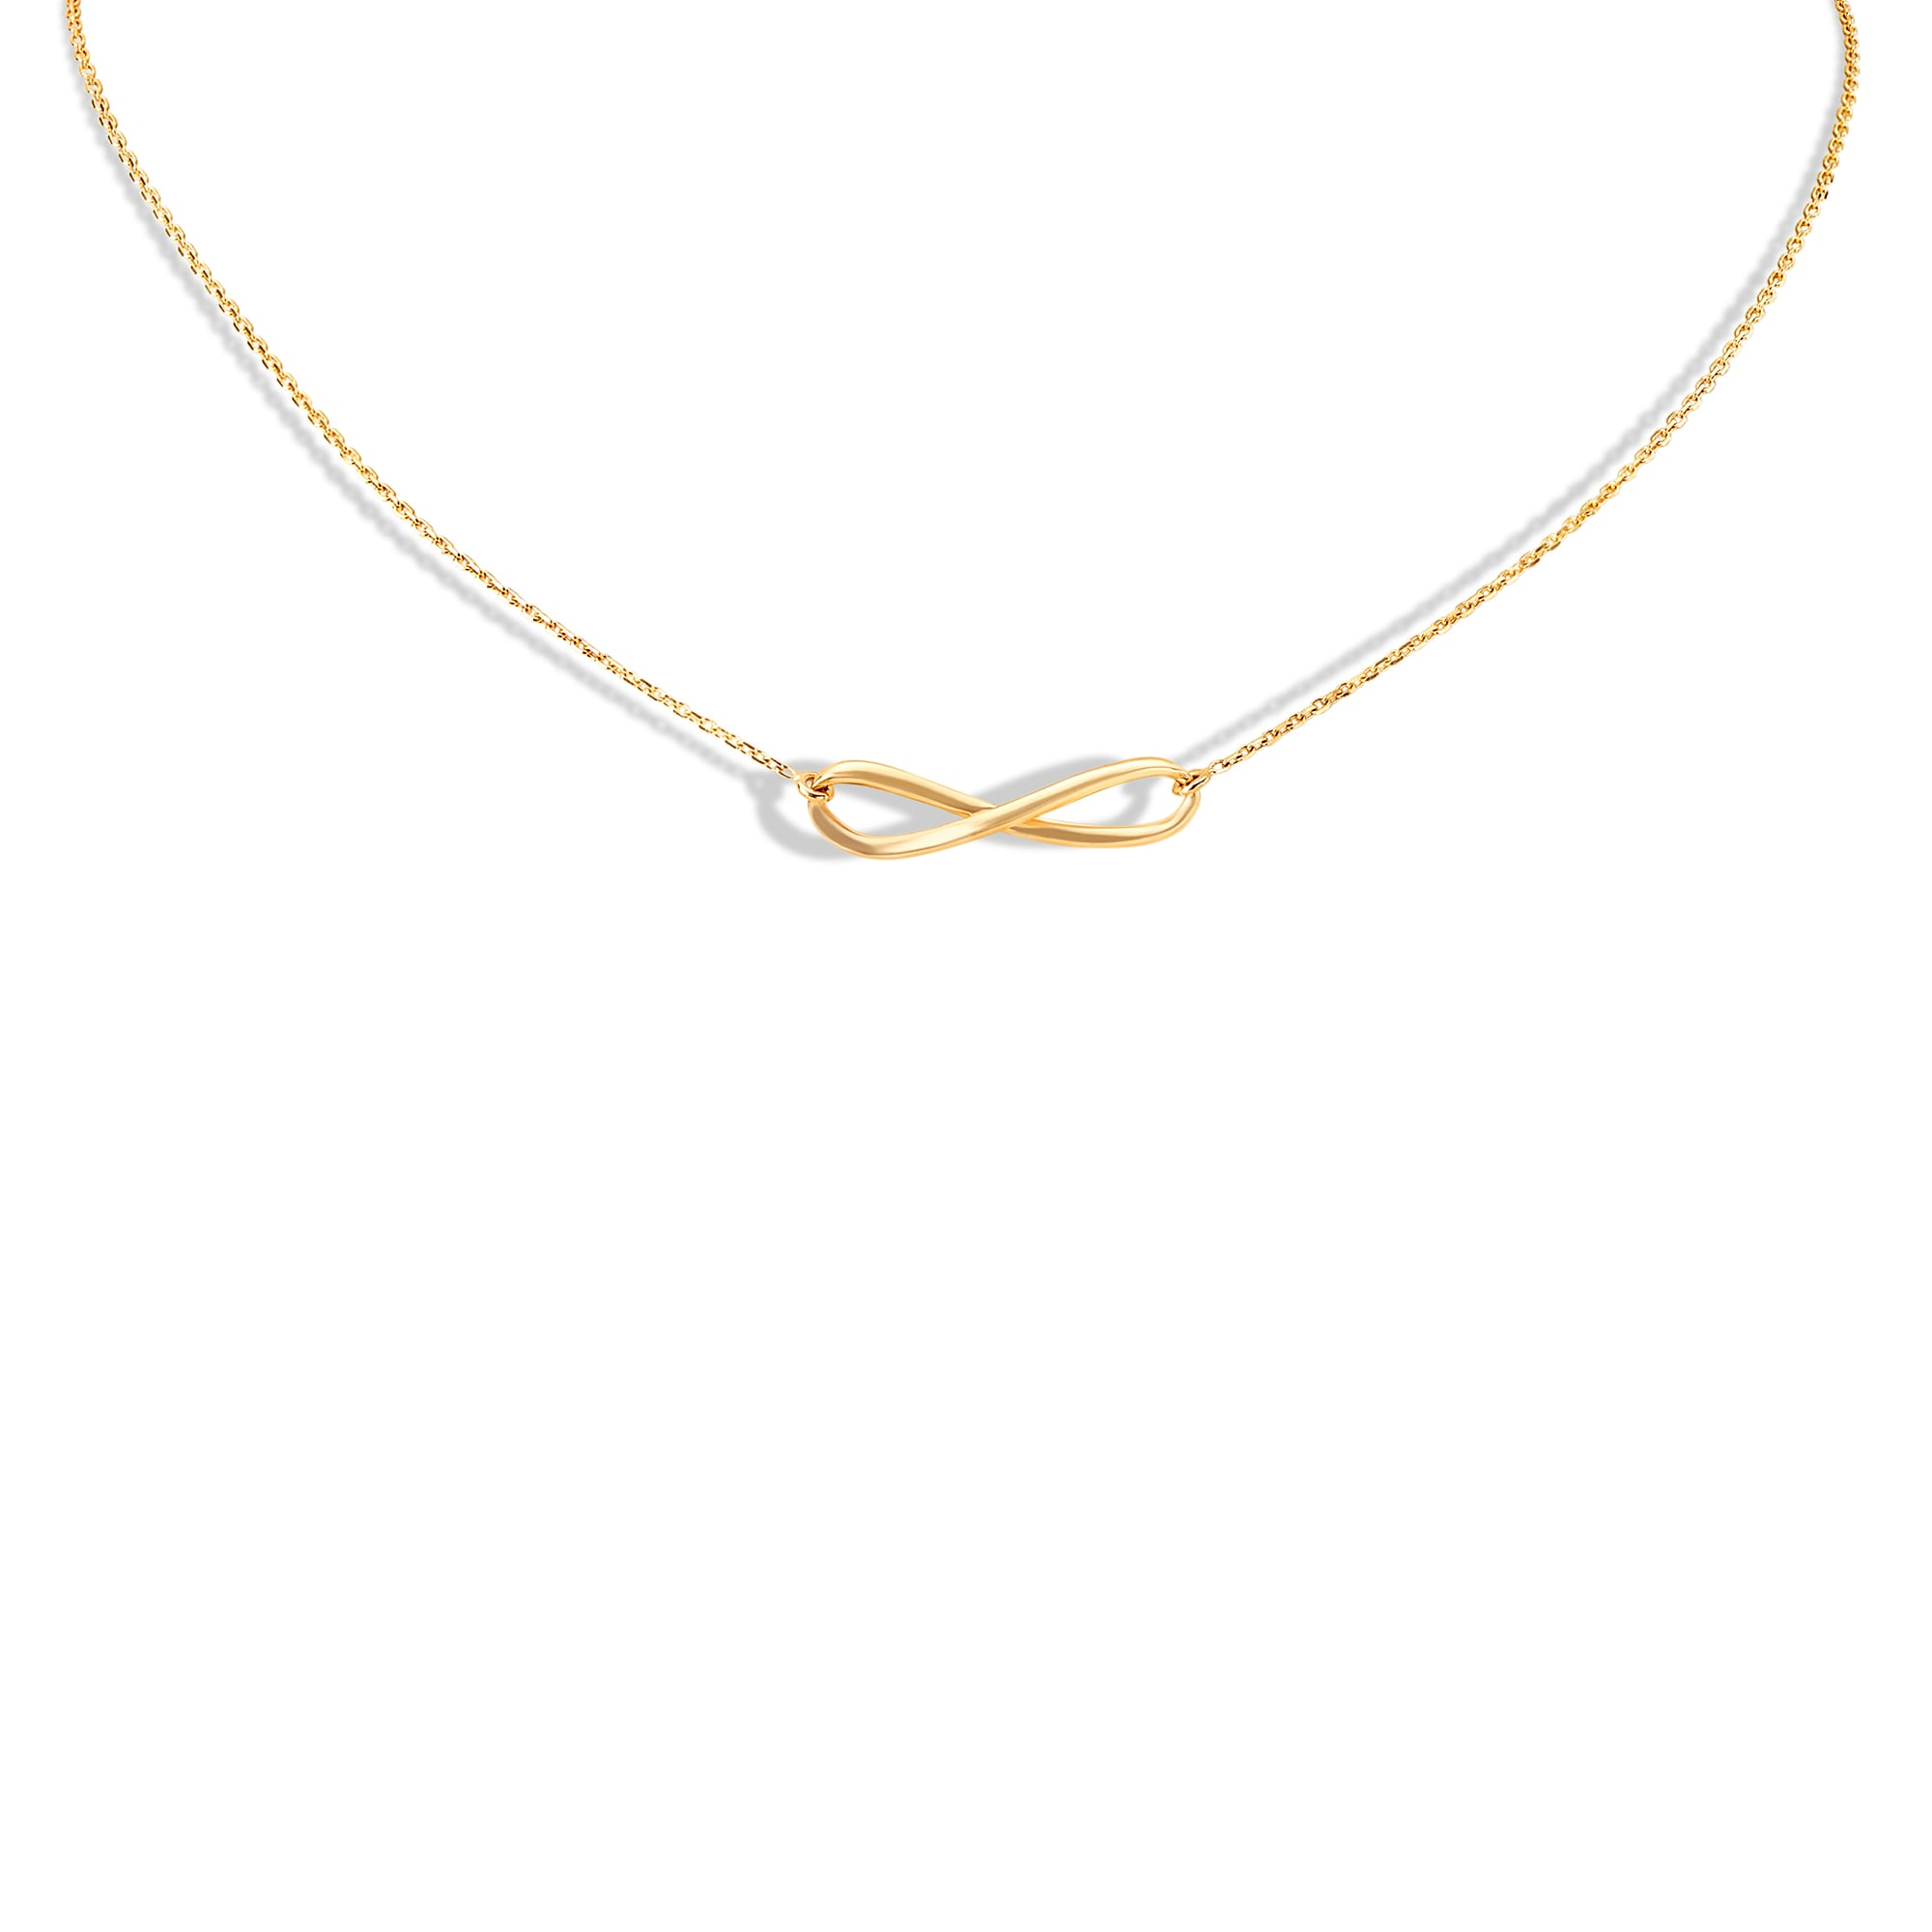 Mia by Tanishq Friends of Bride 14KT Yellow Gold Necklace   Mia